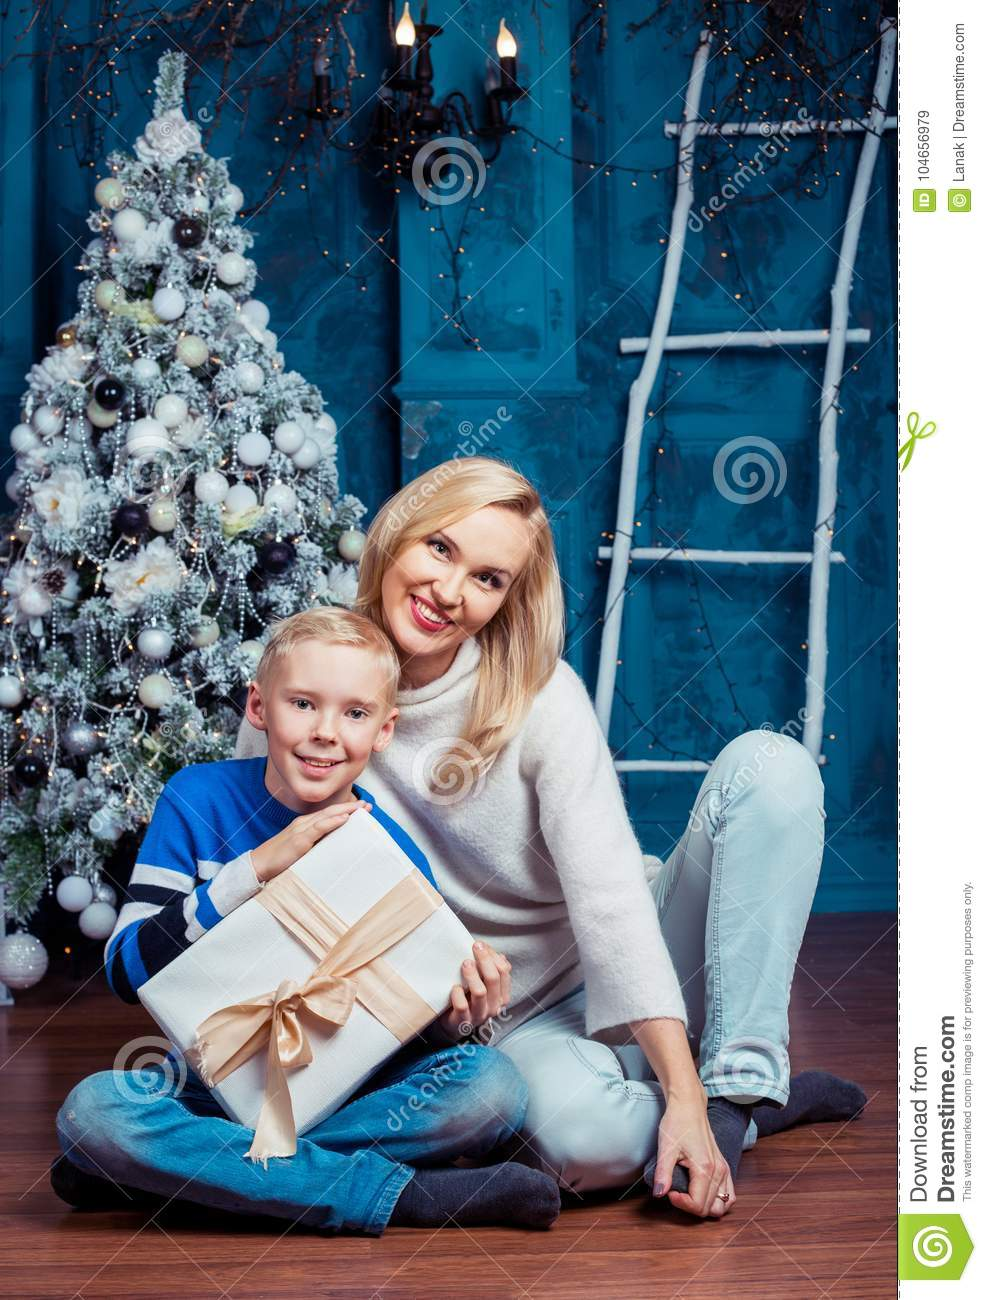 Mother and son at Christmas